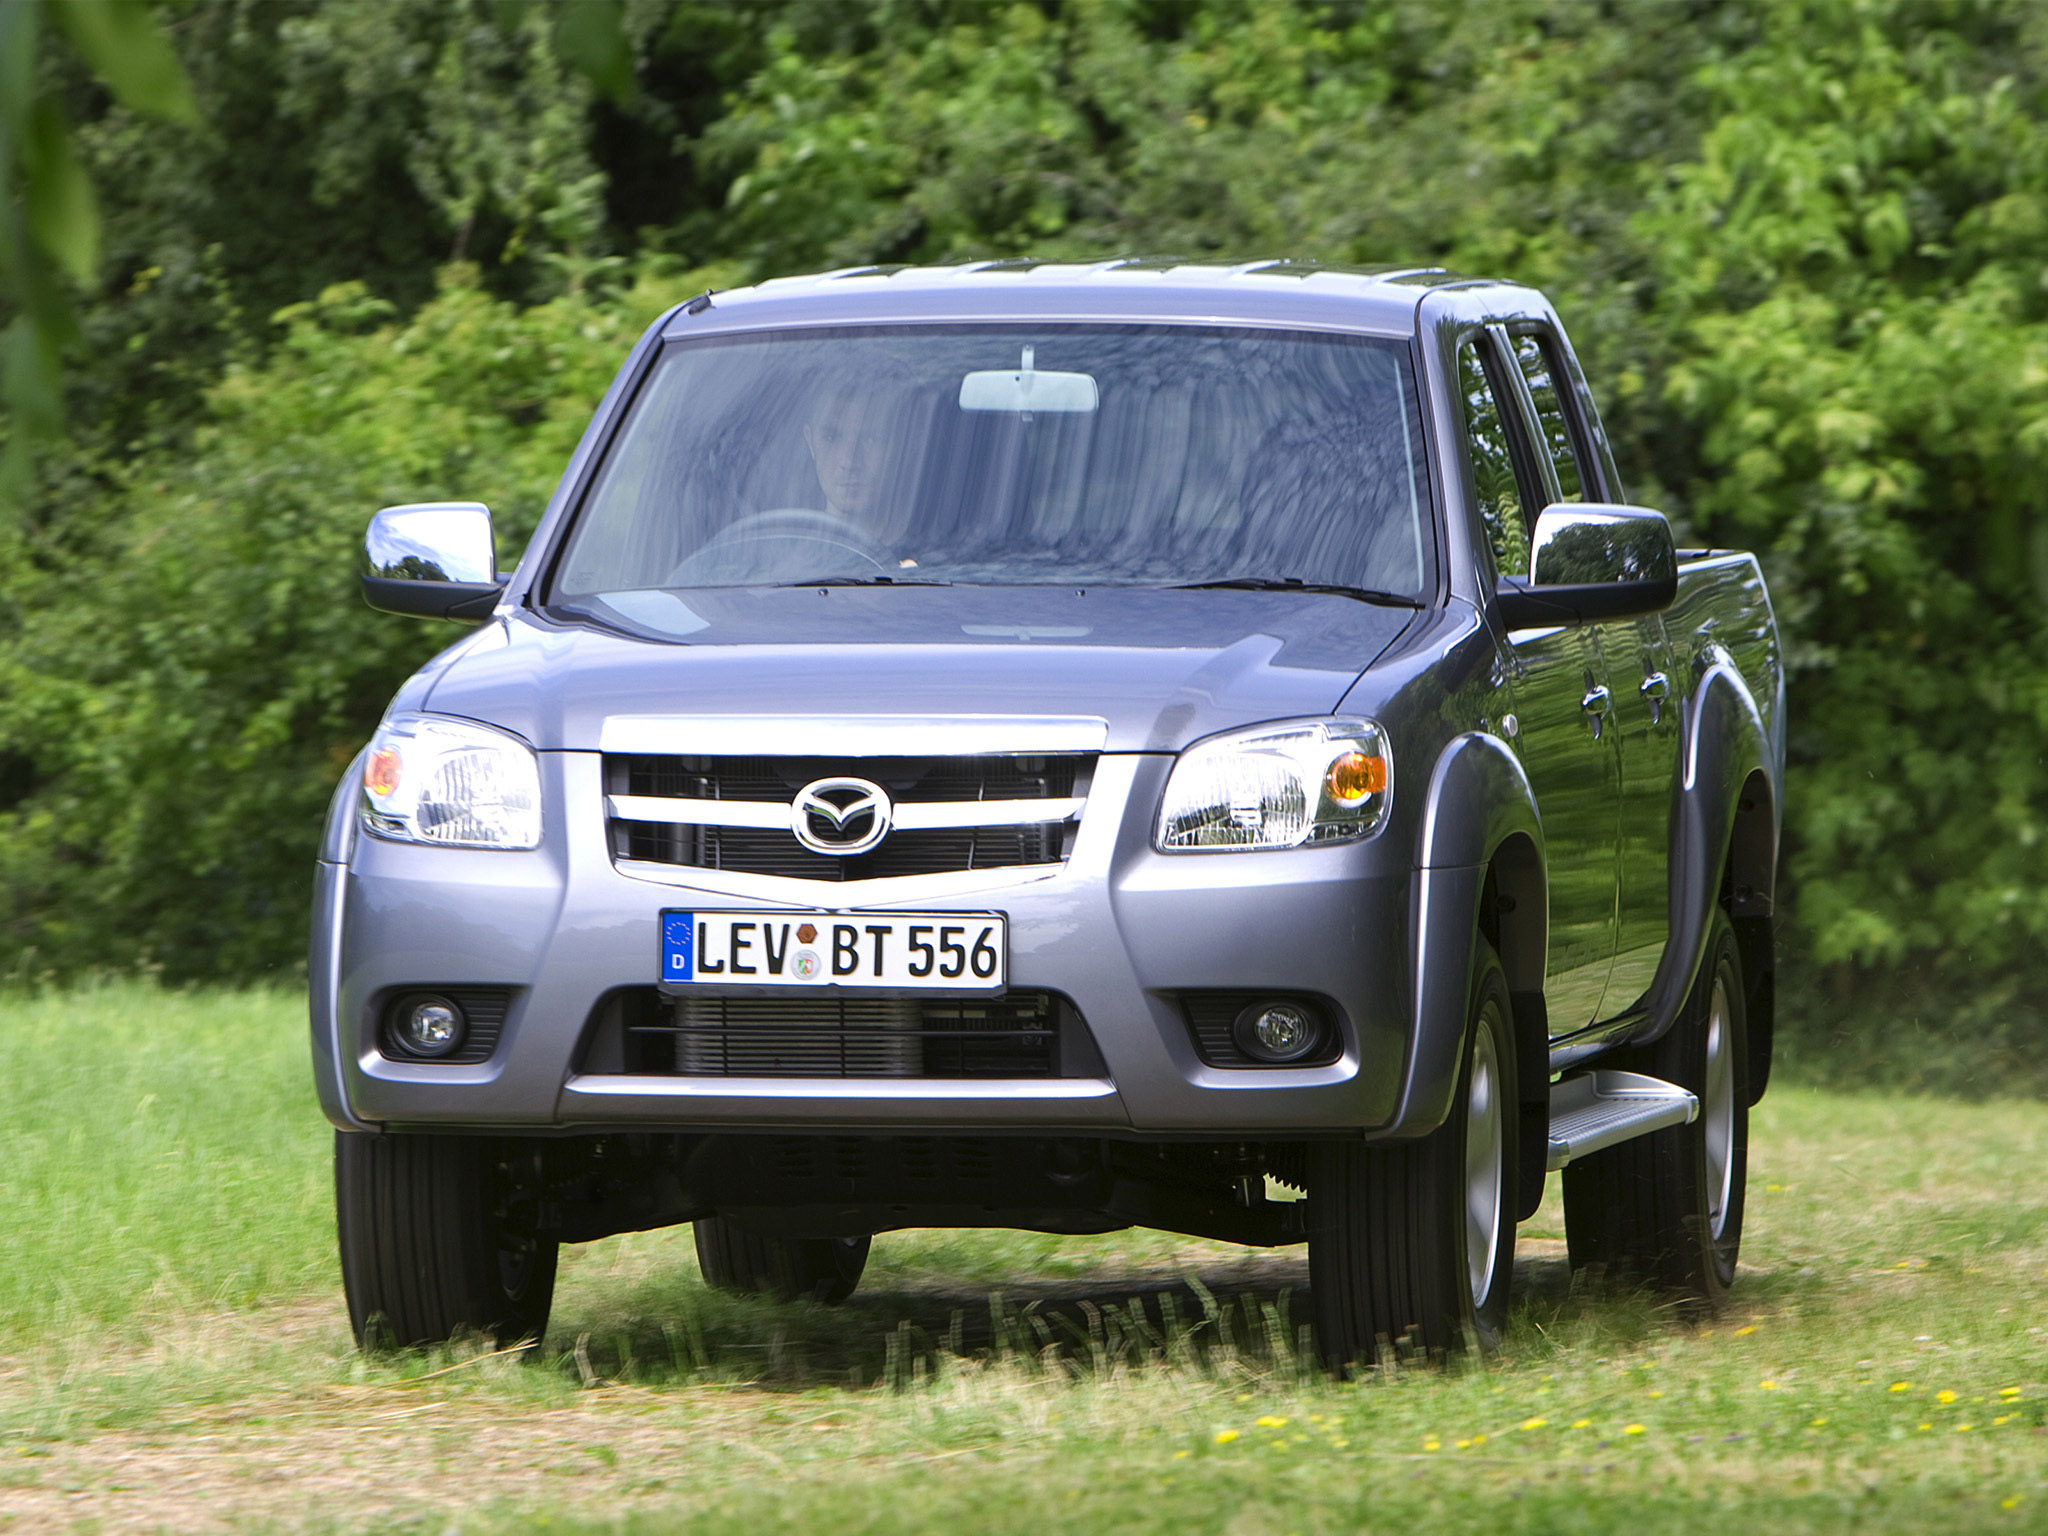 Mazda Bt 50 2008 Tuning >> Mazda BT-50 Double Cab UK 2008 Mazda BT-50 Double Cab UK 2008 Photo 05 – Car in pictures - car ...